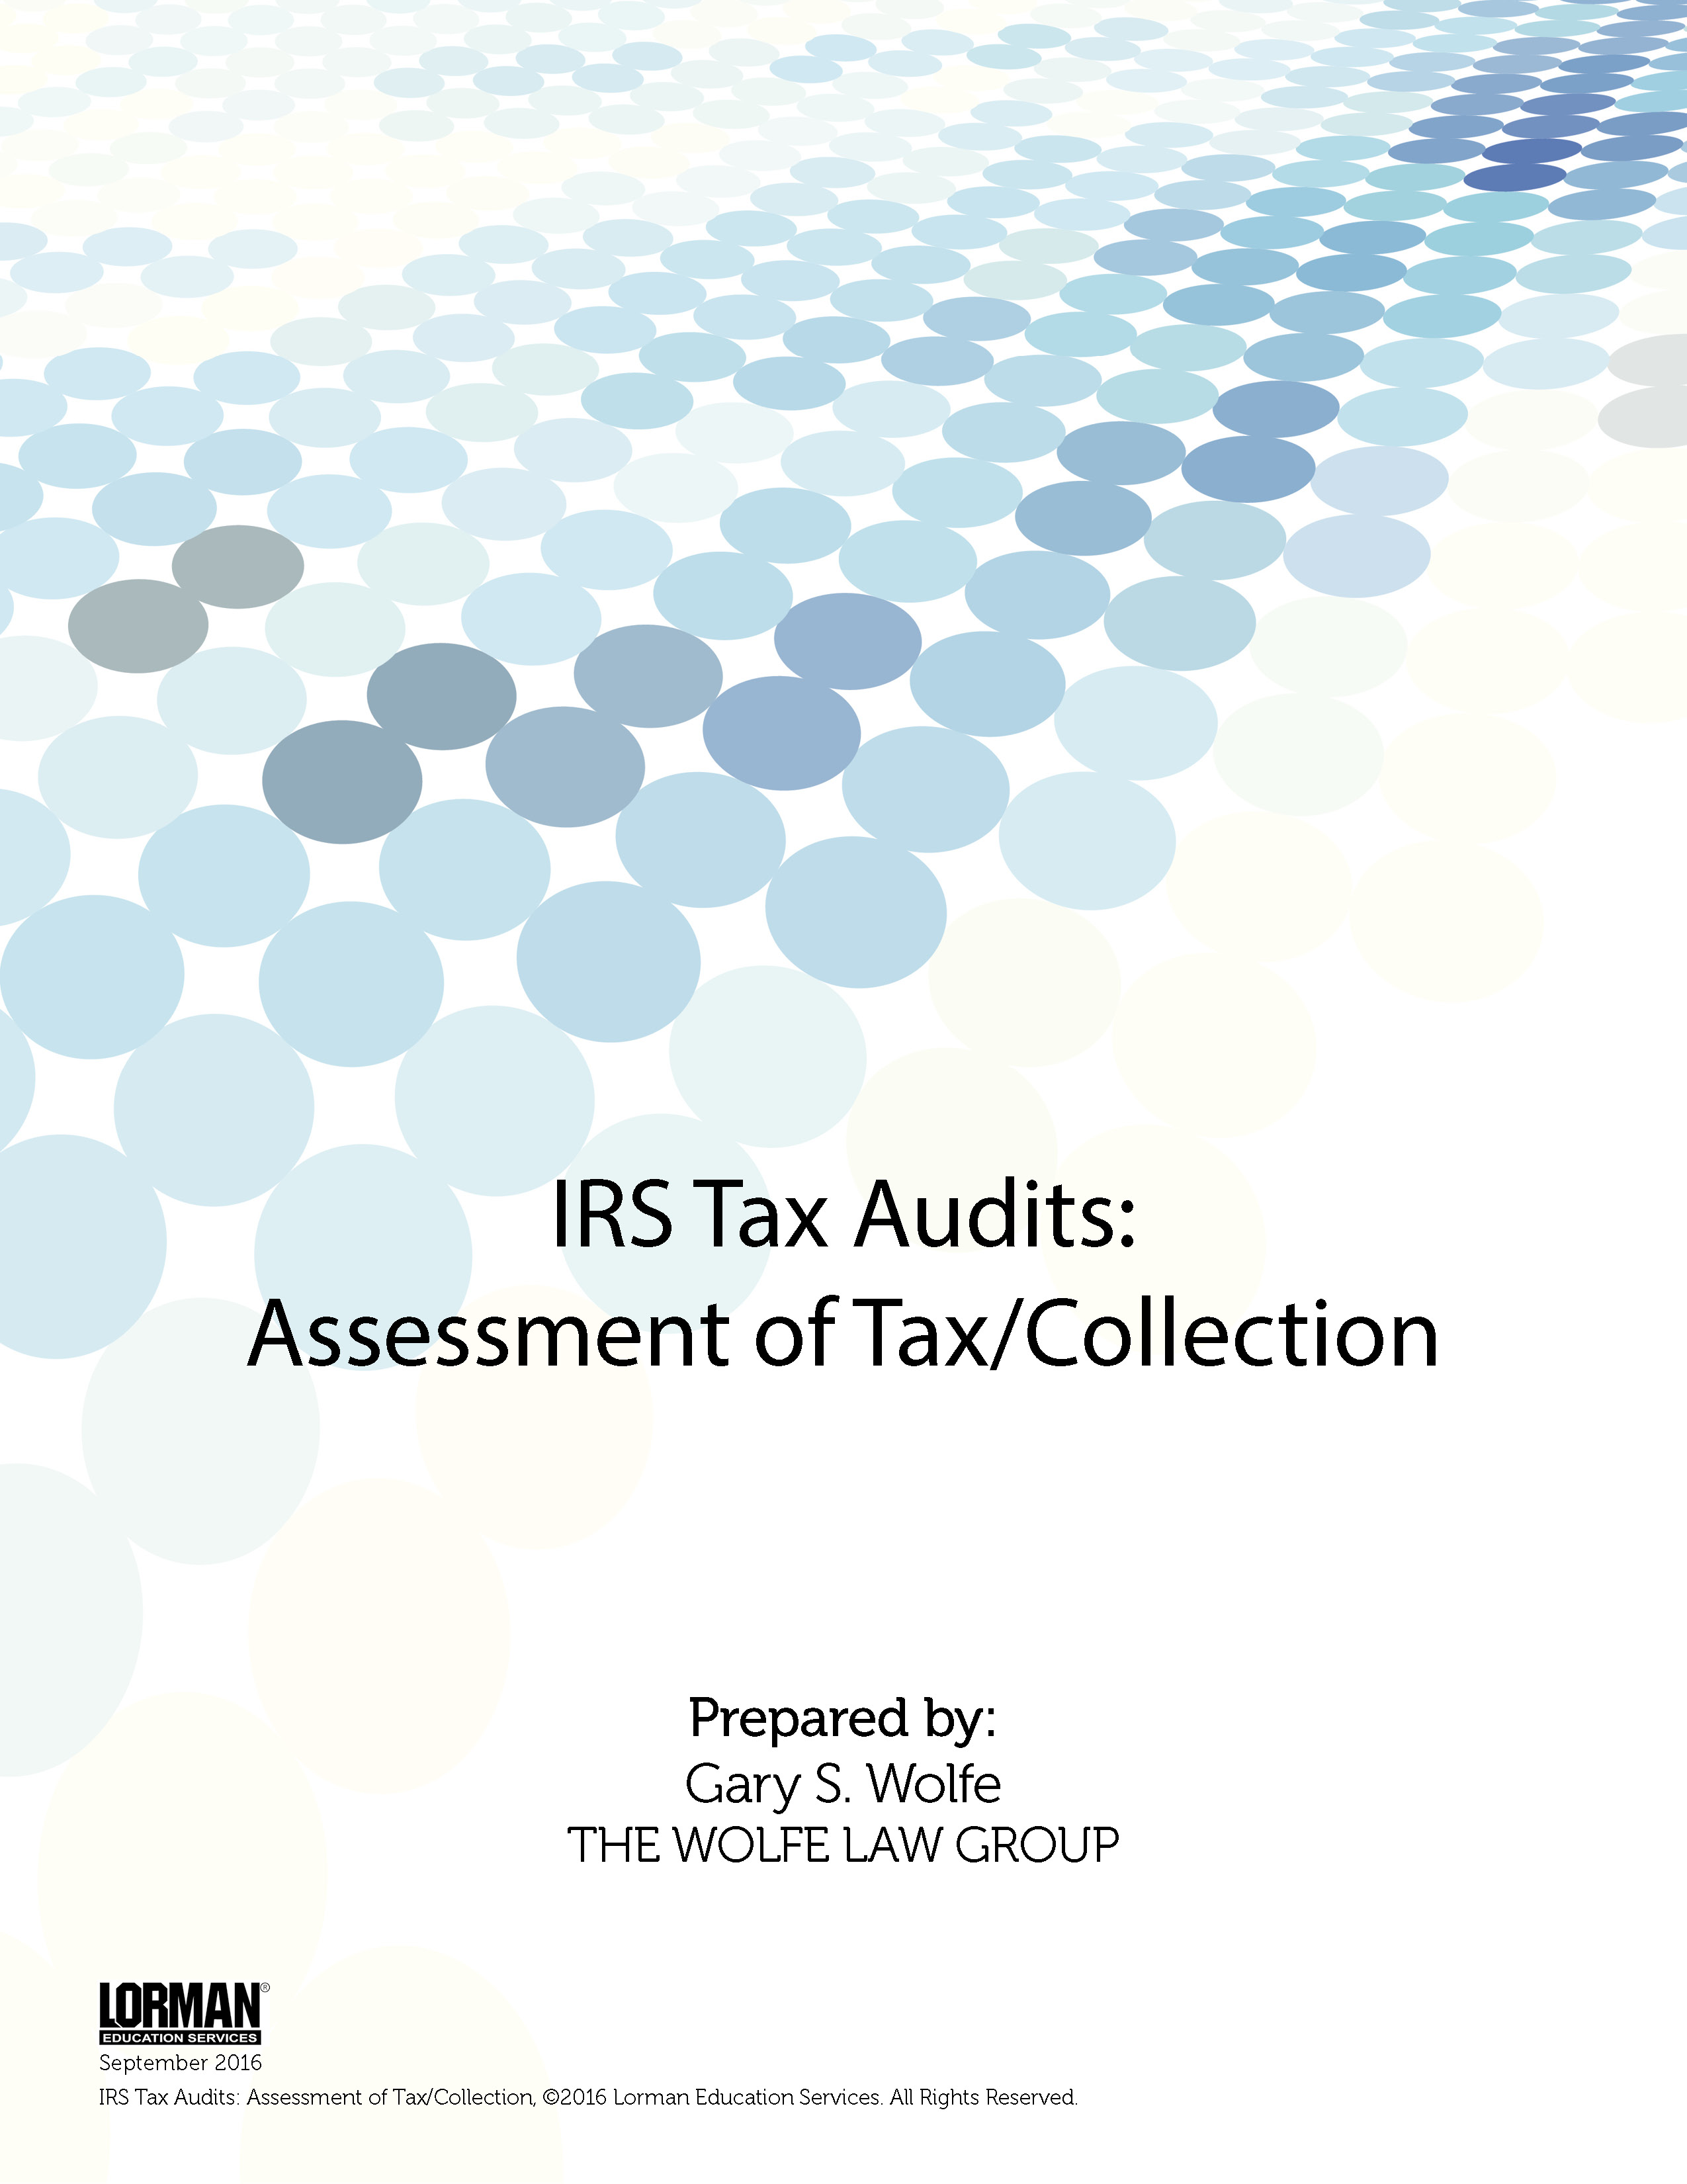 IRS Tax Audits - Assessment of Tax-Collection